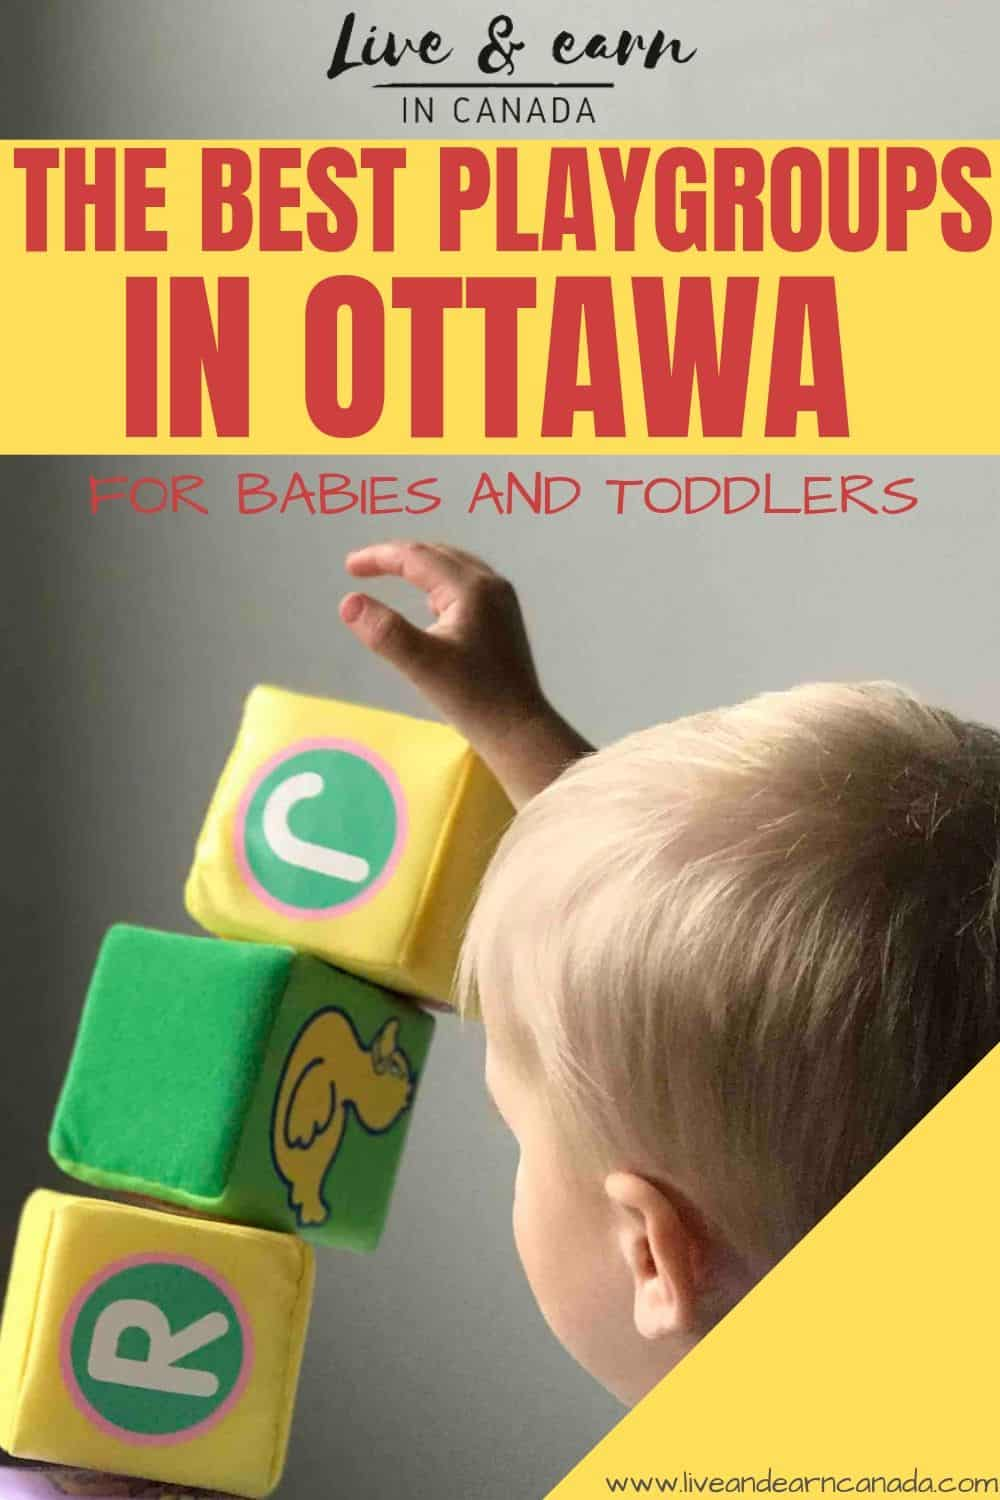 Looking for activities to do with Kids in Ottawa? Here are a few free playgroups in Ottawa that you can attend with your toodlers #Ottawa #KidsActivitiesinOttawa